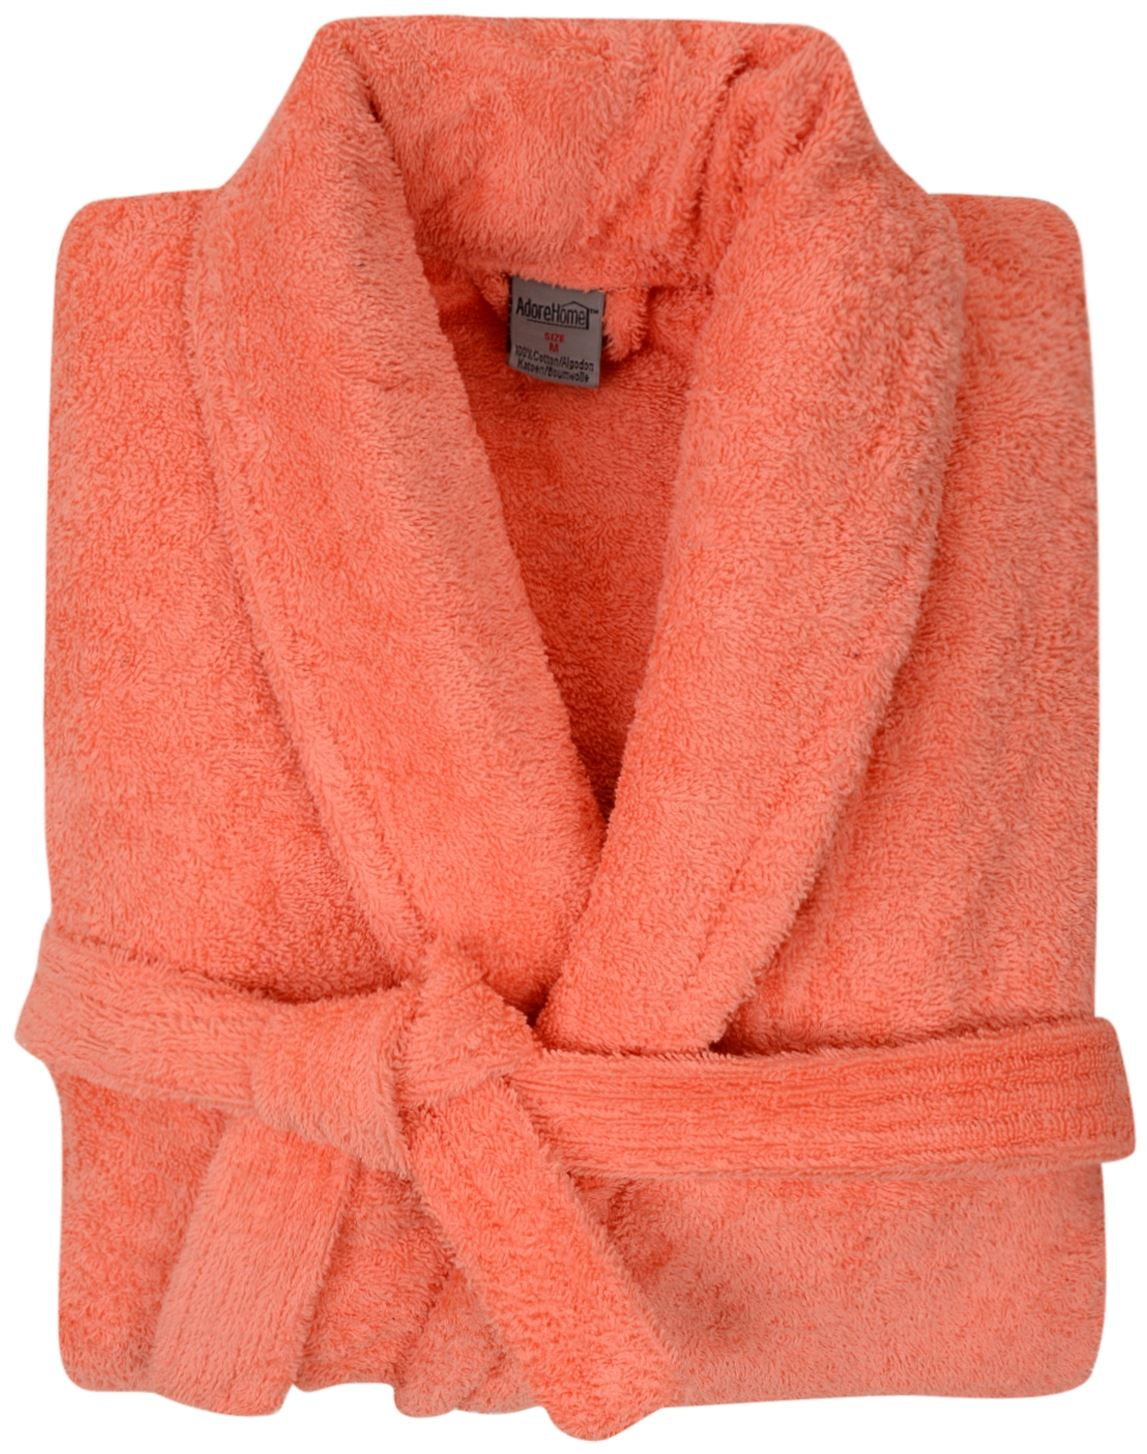 100% Cotton Terry Towelling Shawl Collar Coral Bath Robe Dressing ...